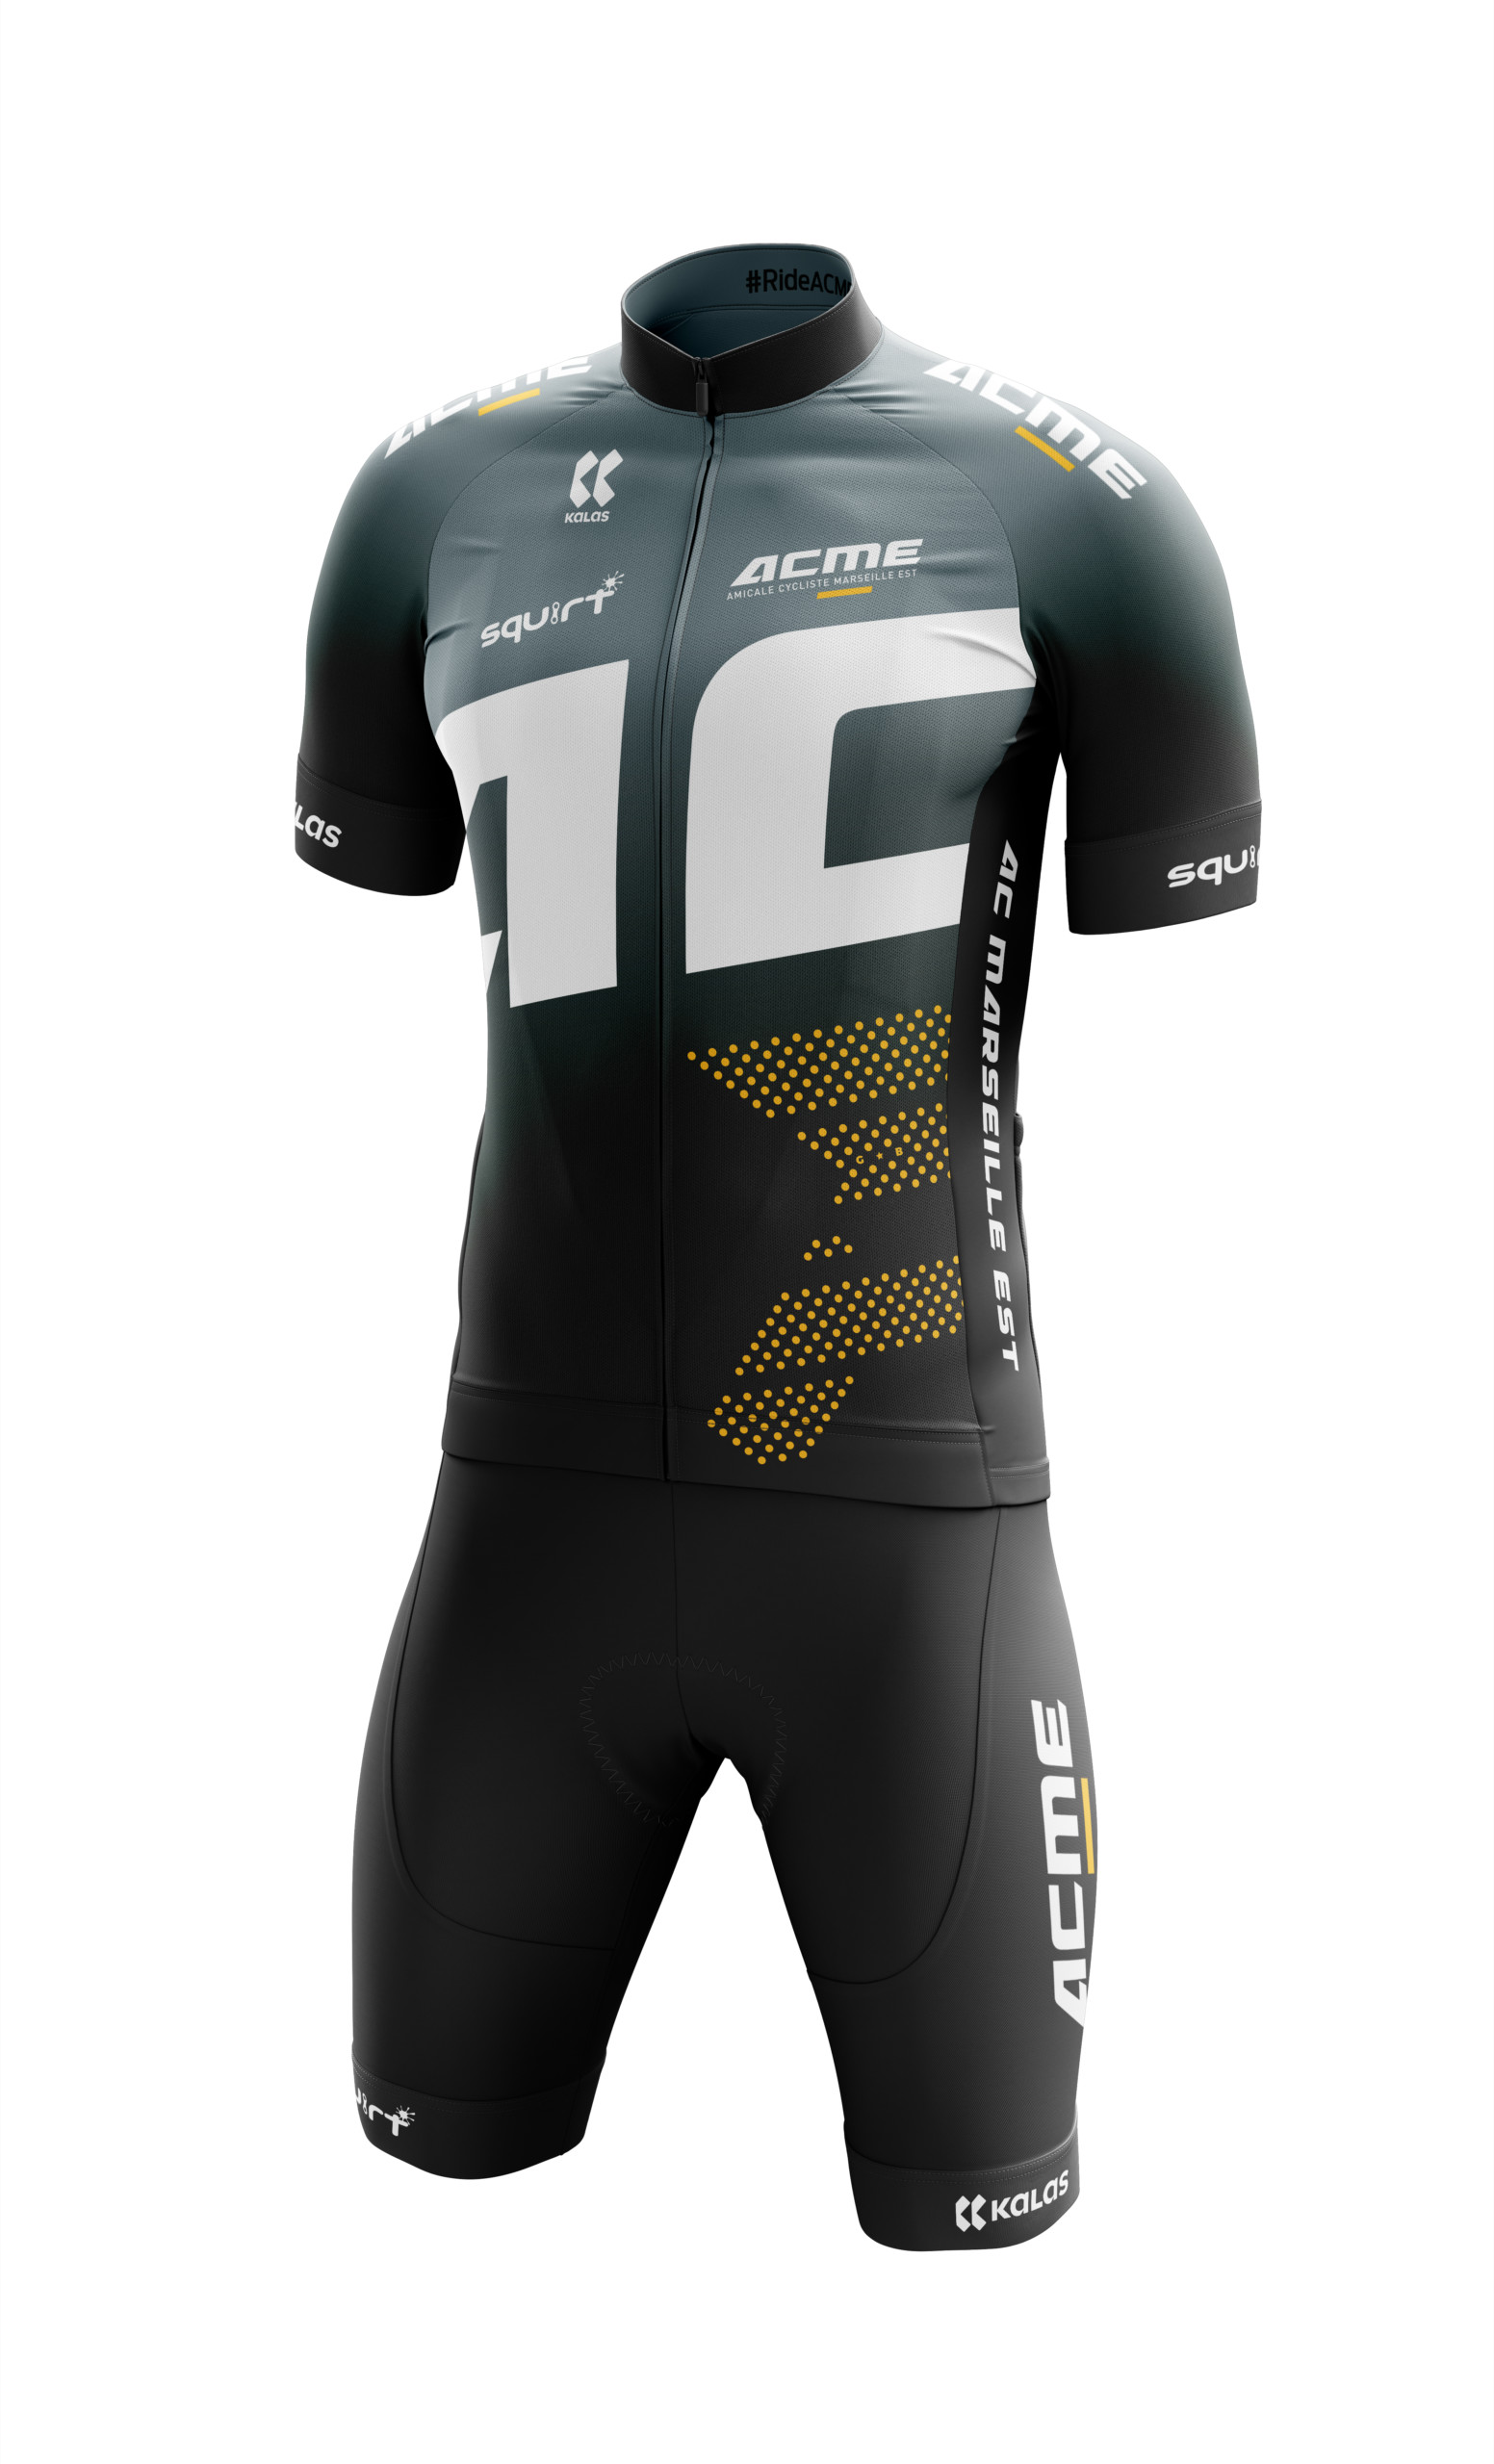 Maillot 2016 designed by SRO